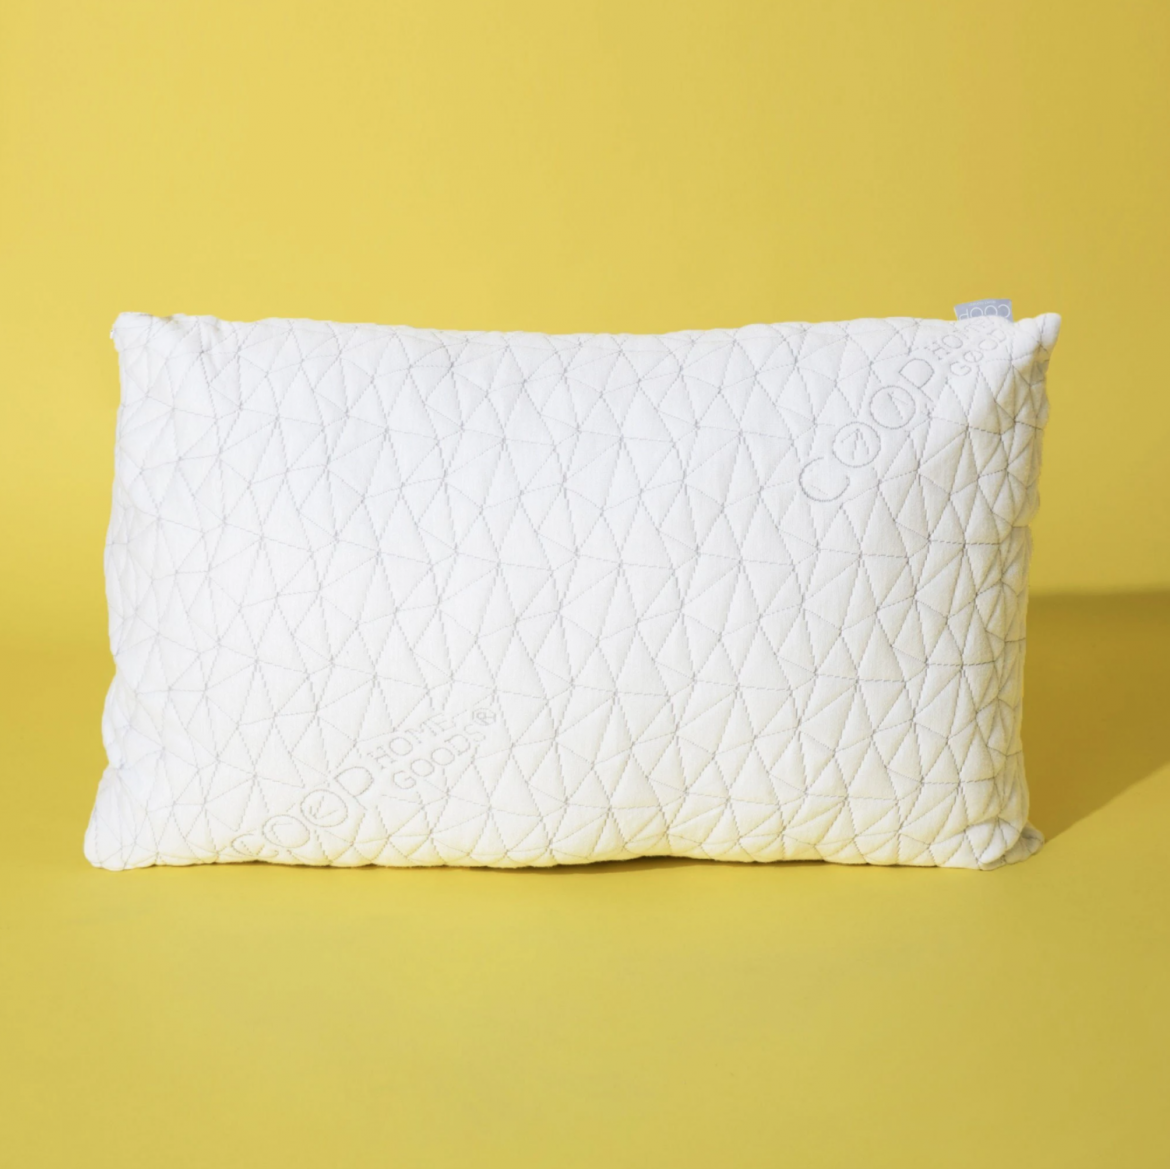 Coop Home Goods - Best Pillows for Back Sleeping